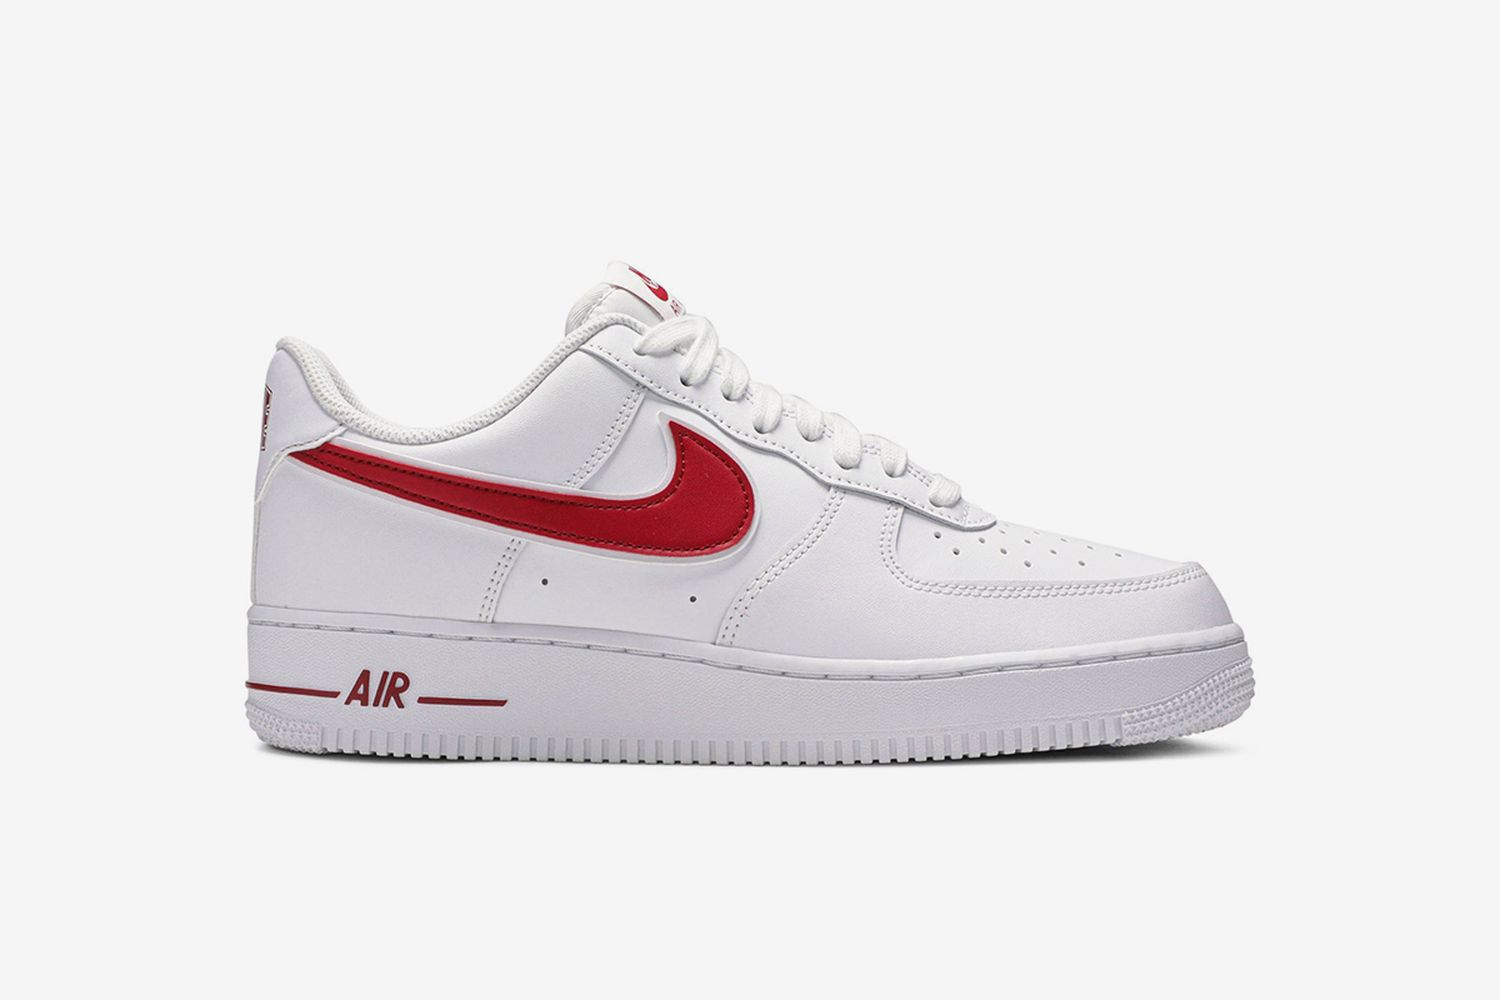 Air Force 1 Low '07 3 'Gym Red'